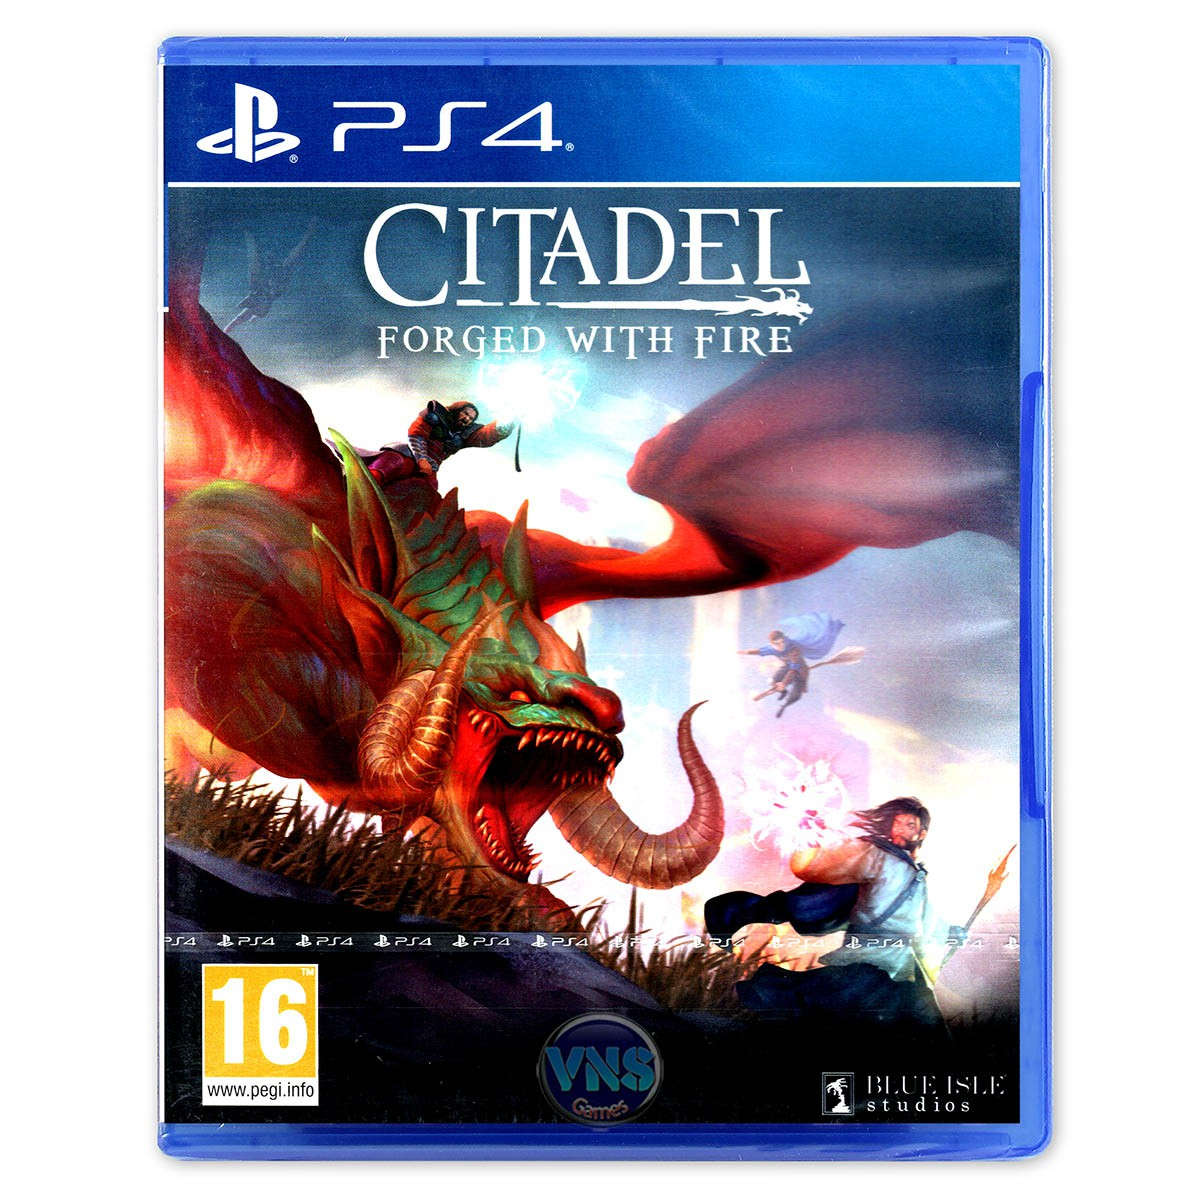 Citadel: Forged With Fire - PS4